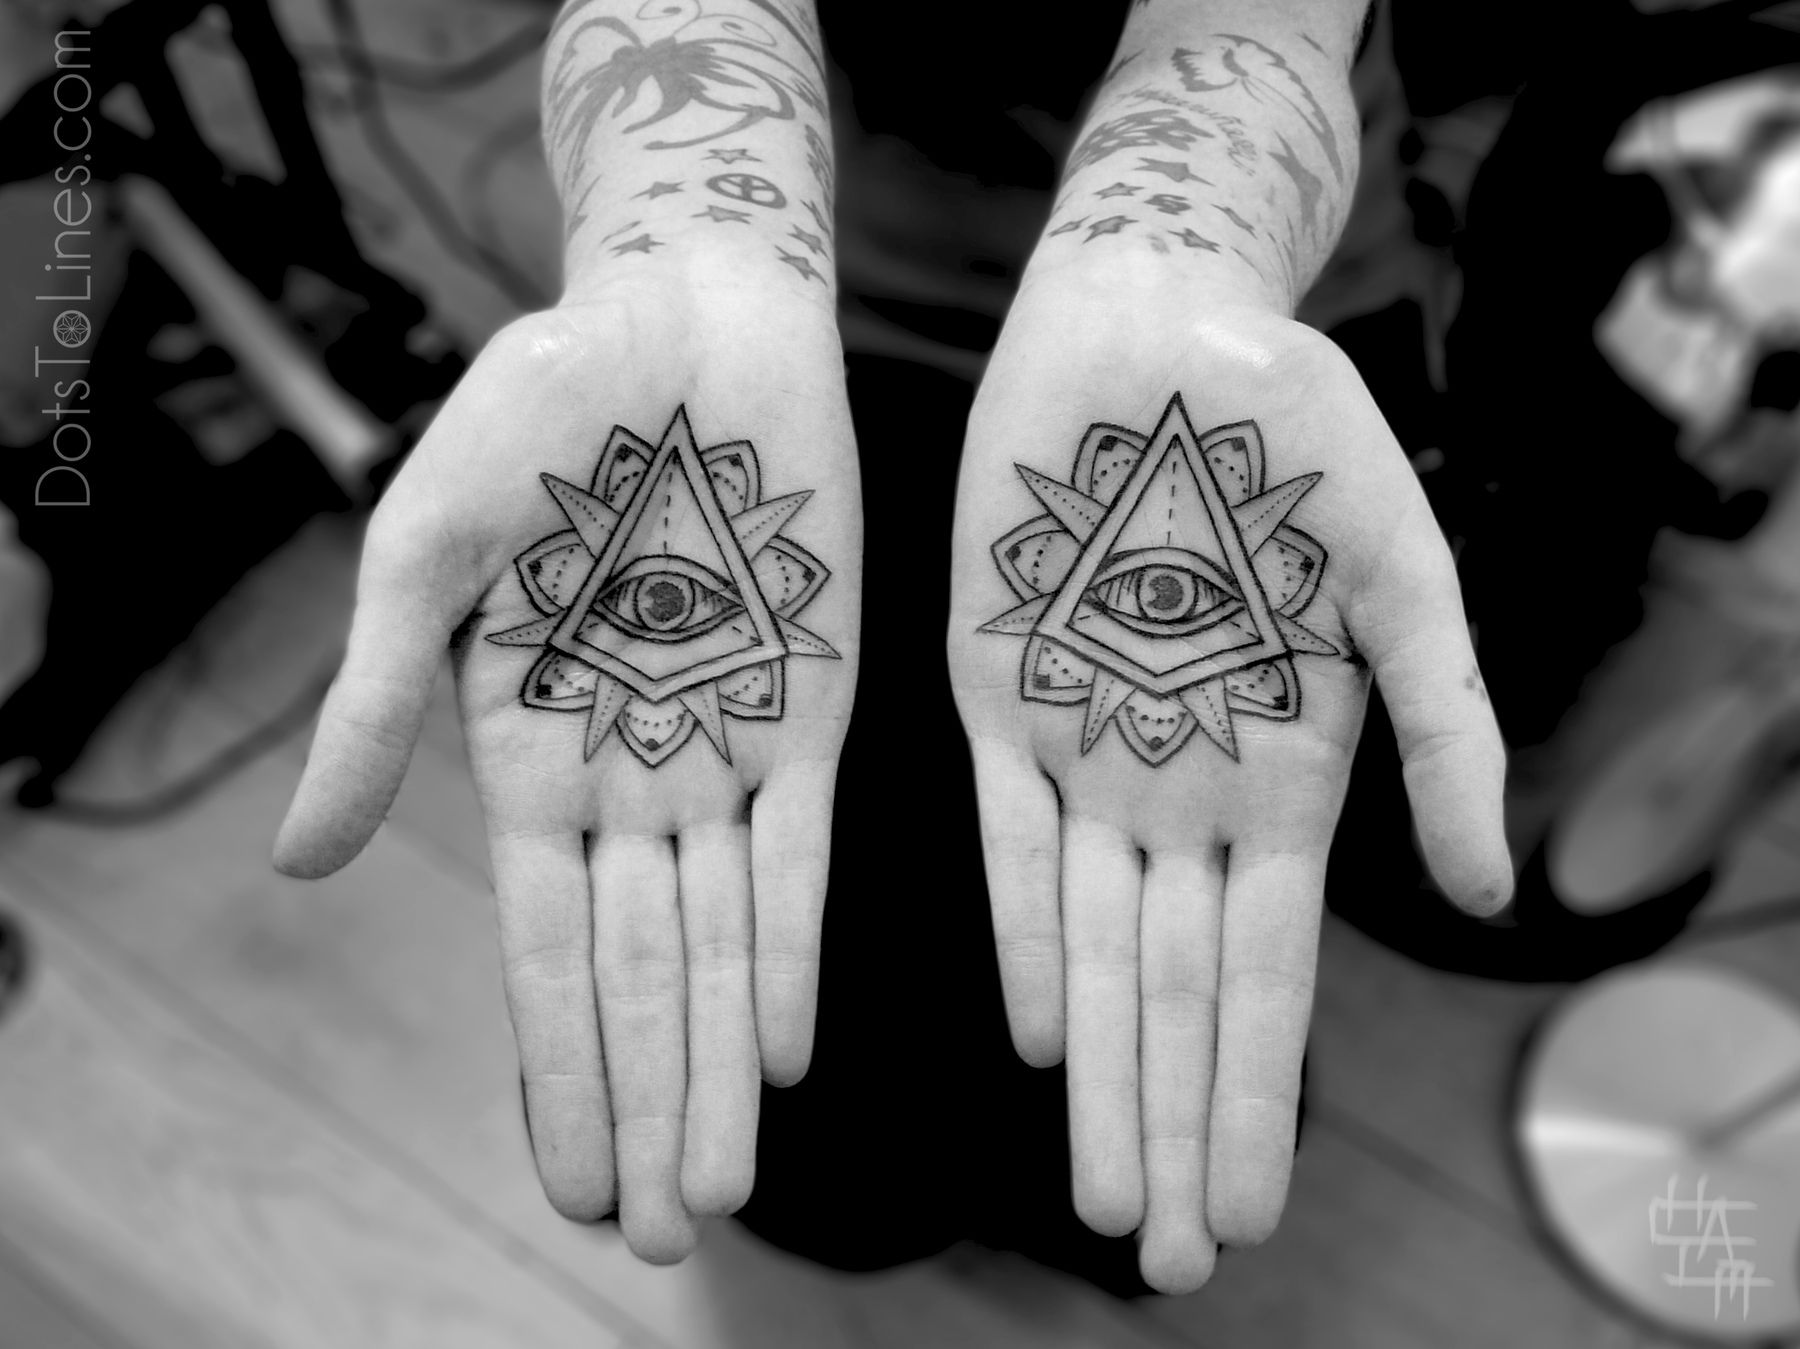 Hand tattoos tattoo ideas hands body art tattoo s floral tattoo - What Are Your Thoughts On Palm Tattoos Check Out More Custom And Original Tattoos By Chaim Machlev Dotstolines At The Links